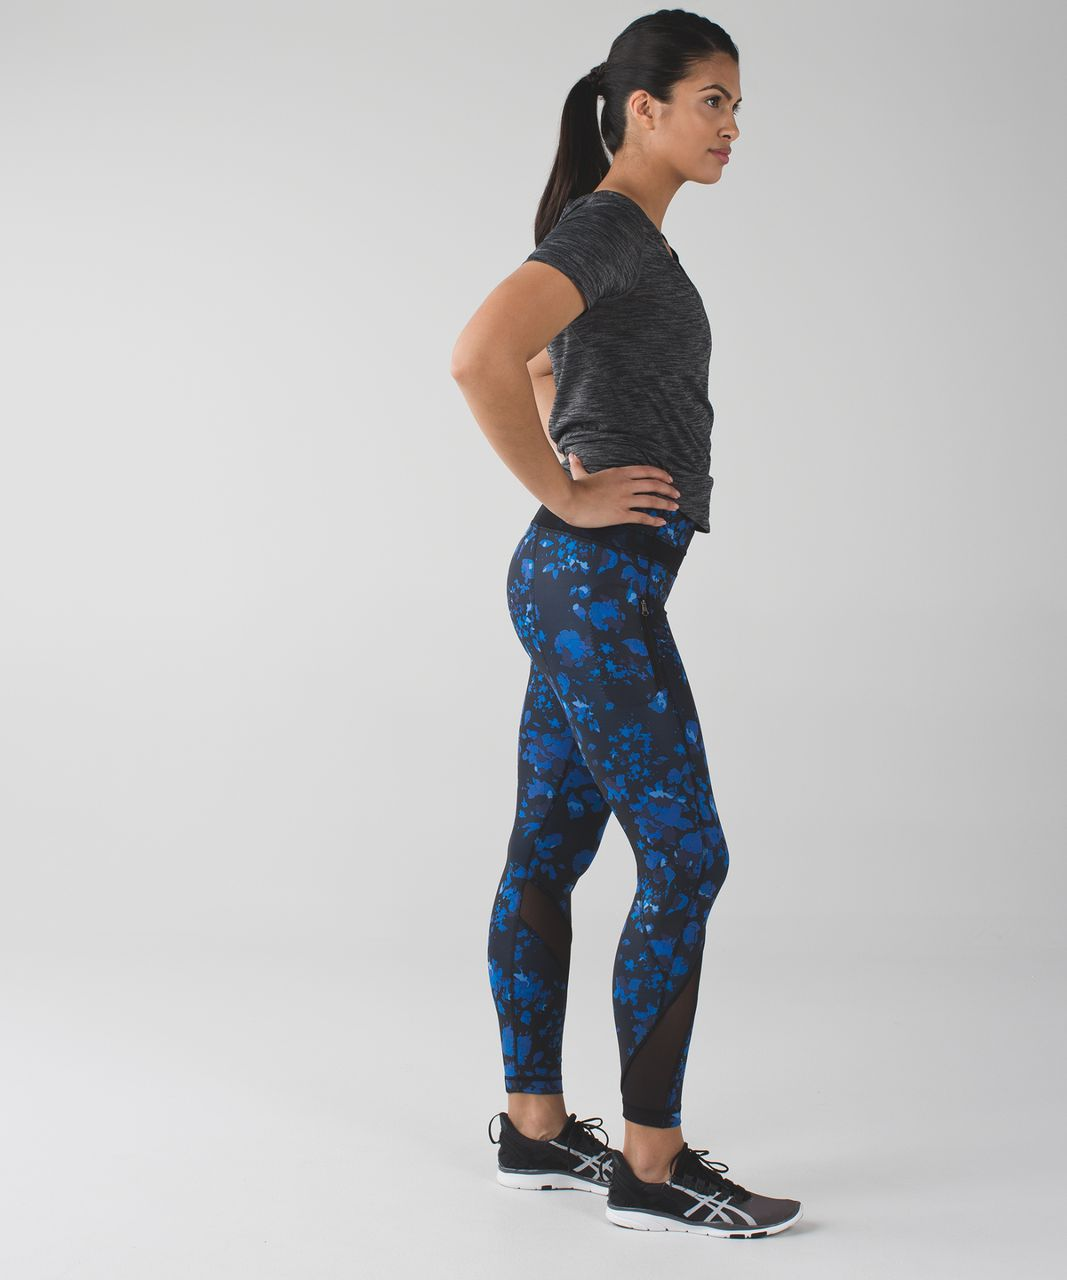 Lululemon Inspire Tight II *Full-On Luxtreme (Mesh) - Dandy Digie Porcelaine Black / Black